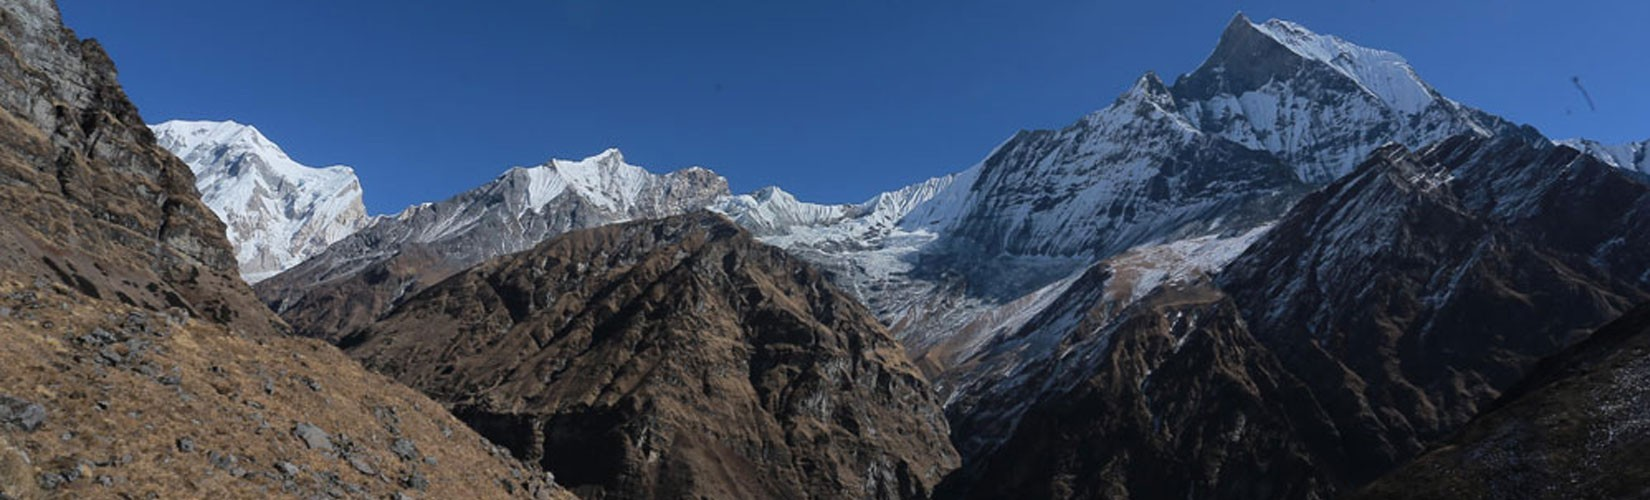 Annapurna Base Camp Trek via Poonhill